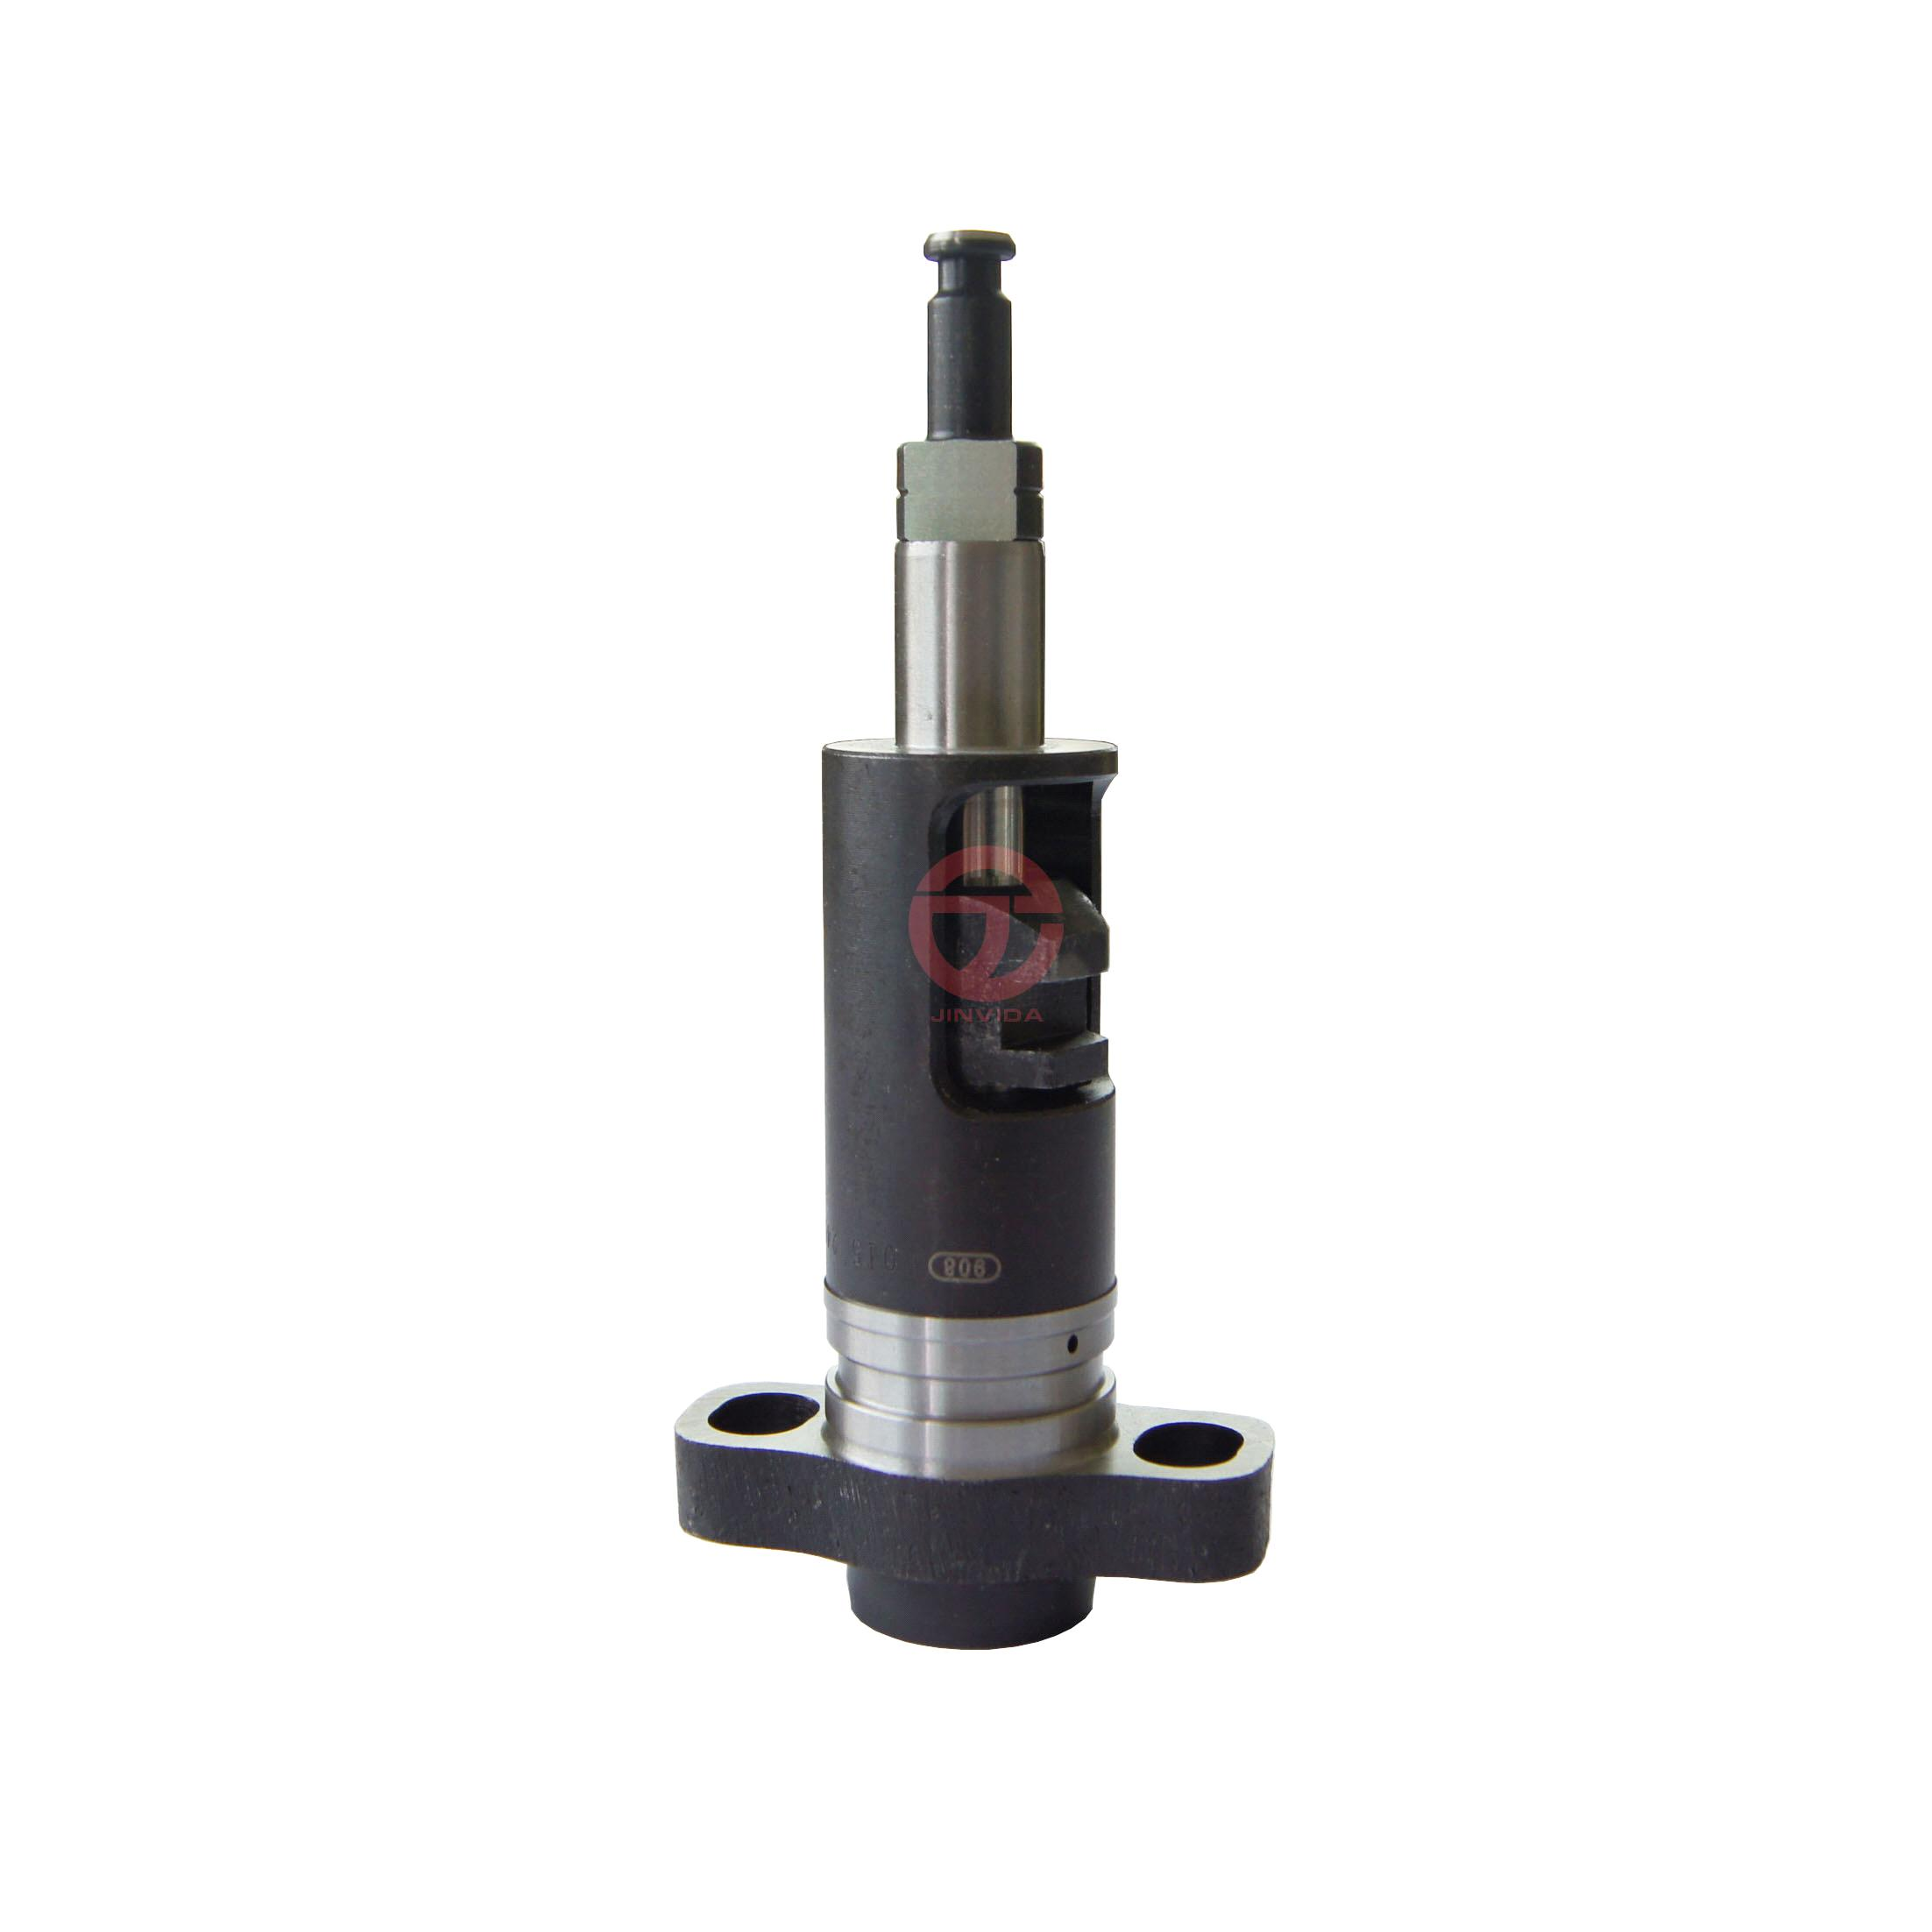 High Performance Diesel Fuel Injection Plunger PS 2 418 425 988 Purchasing,  Souring Agent | ECVV.com Purchasing Service Platform